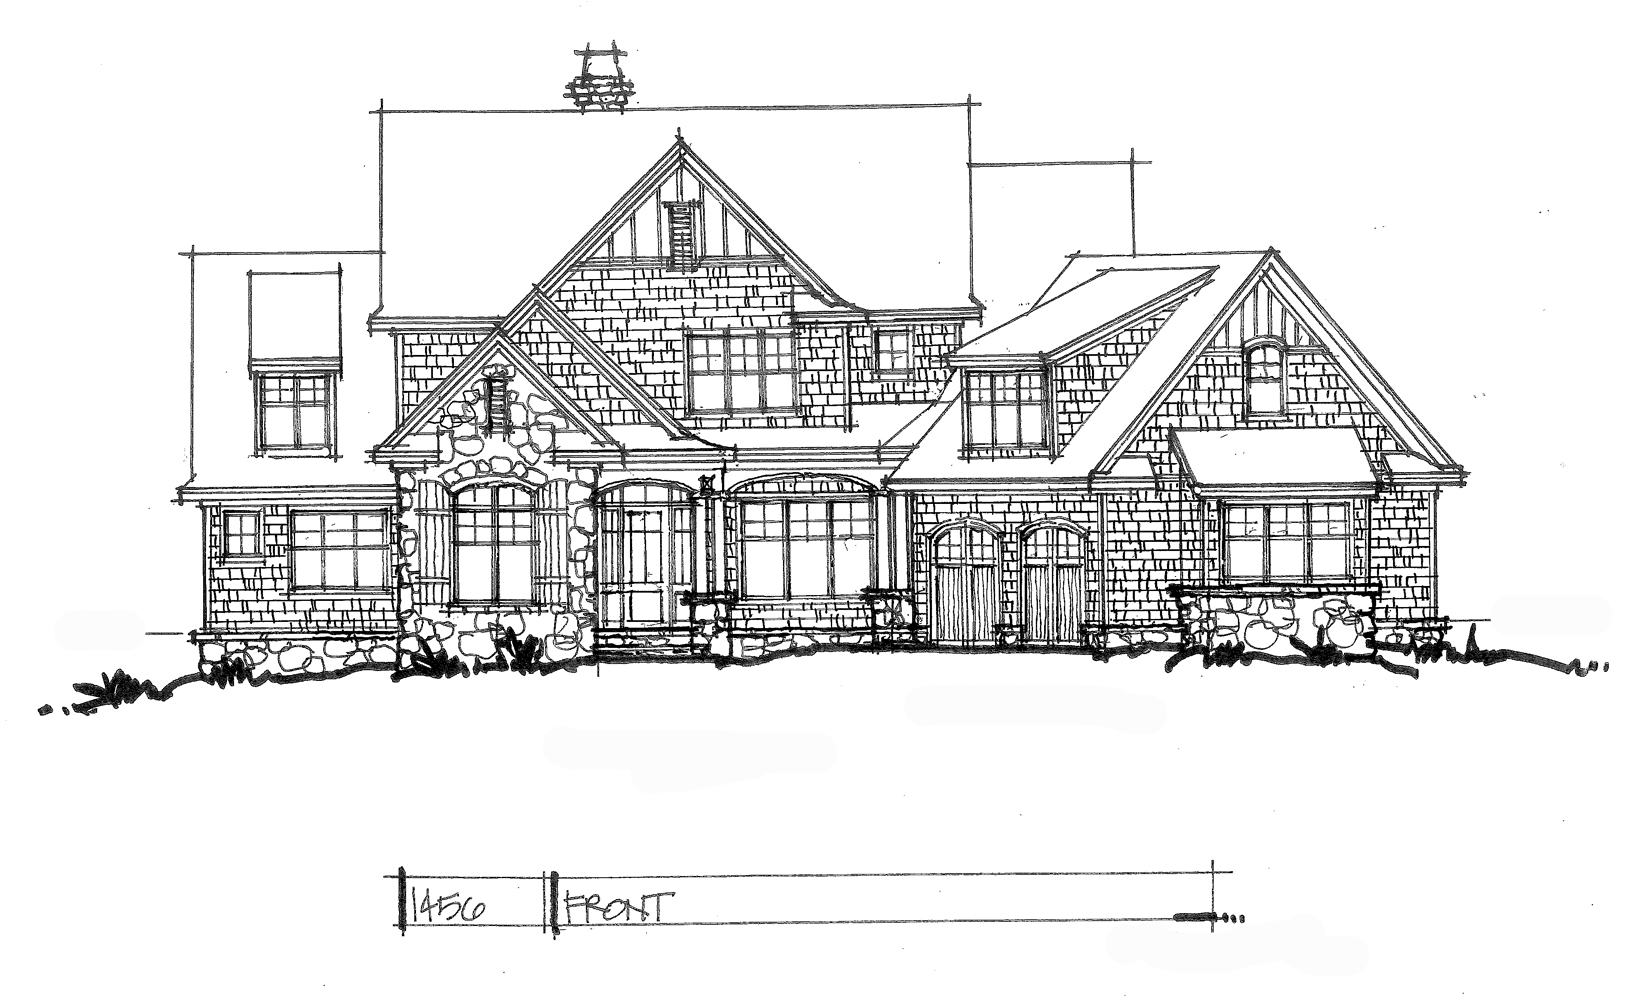 Check out the front elevation of conceptual house plan 1456.